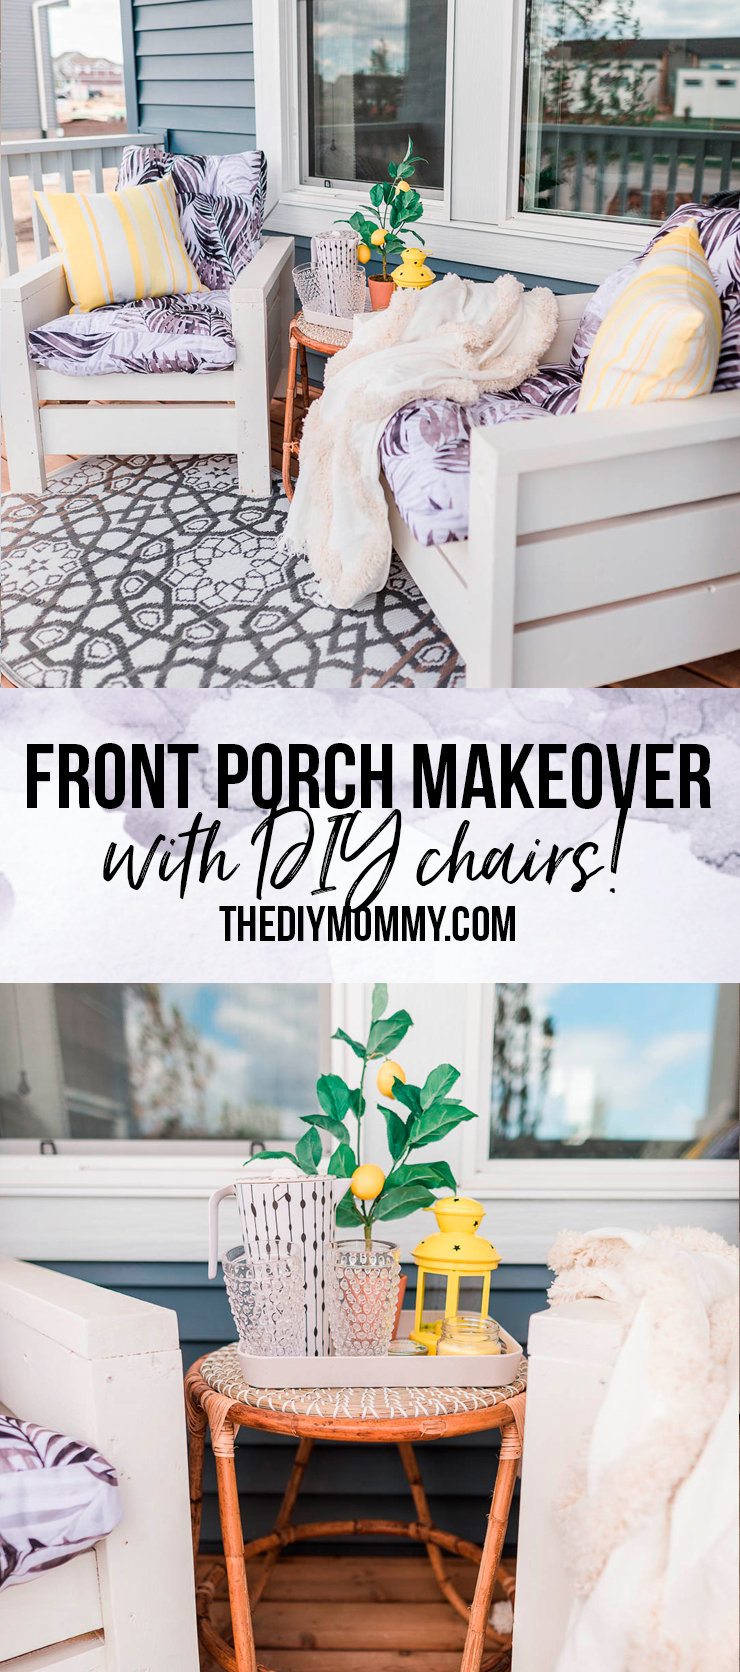 This front porch makeover with DIY outdoor chairs features bright yellow accents and handmade planter boxes. Get ideas for small front porch decorating!